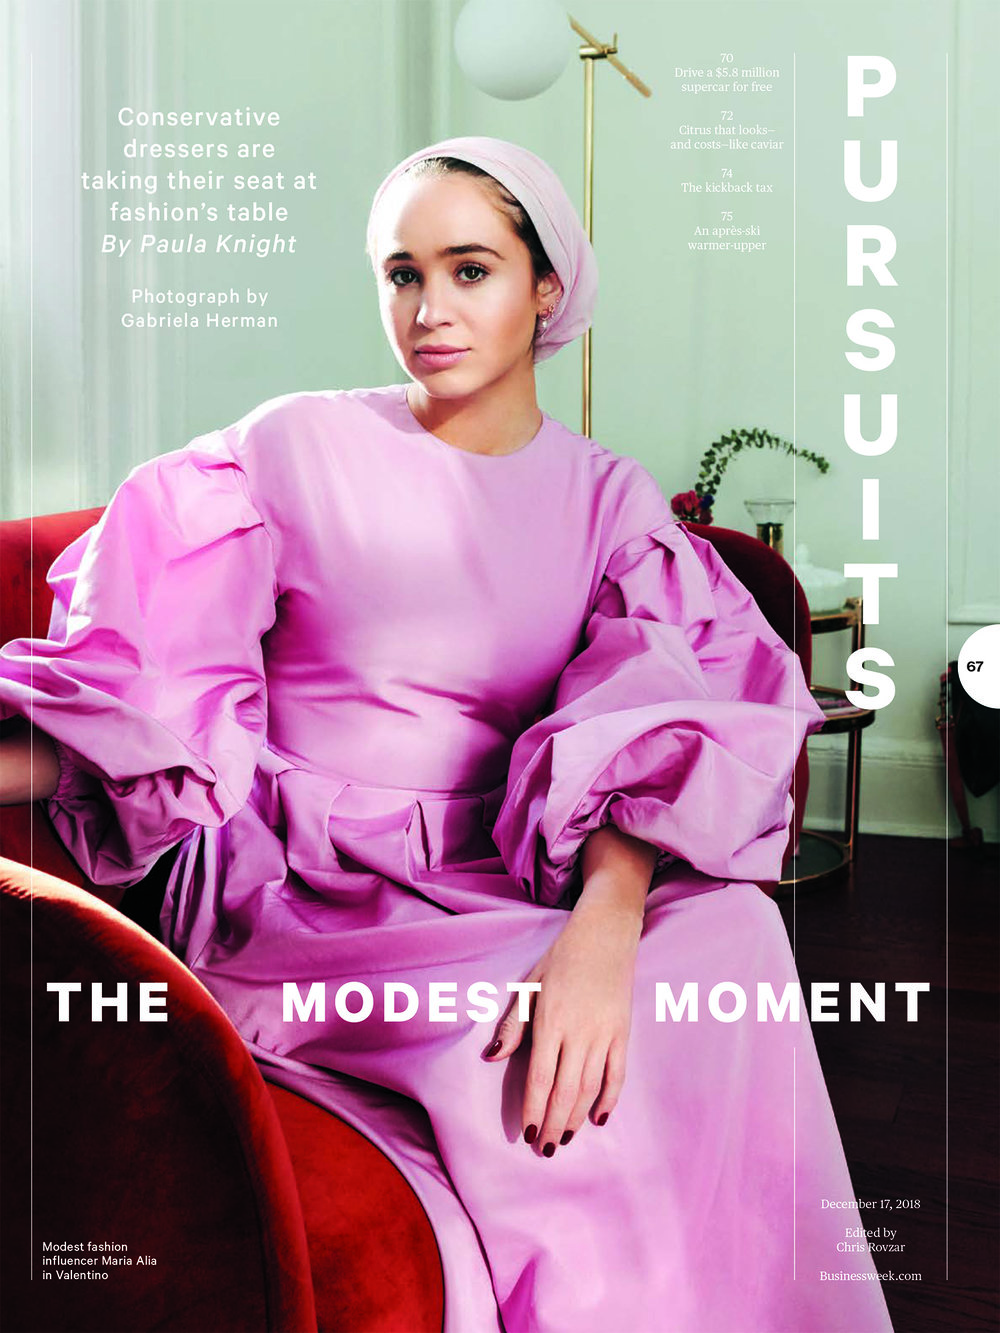 PRESS - June, 2019 The Zoe ReportJune, 2019 NY PostMay, 2019 Carolina HerreraMay, 2019 Vogue ArabiaMay, 2019 Vogue ArabiaMay, 2019 GlamourMay, 2019 Refinery29April, 2019 WhoWhatWearApril, 2019 The Zoe ReportApril, 2019 Refinery29March, 2019 Vogue ArabiaMarch, 2019 Refinery29February, 2019 Harper's Bazaar ArabiaFebruary, 2019 Grazia MEJanuary, 2019 The CutDecember, 2018 BloombergDecember, 2018 Refinery29November, 2018 Refinery29November, 2018 WhoWhatWearOctober, 2018 Teen VogueOctober, 2018 WhoWhatWearSeptember, 2018 ElleSeptember, 2018 VogueSeptember, 2018 Man RepellerSeptember, 2018 The CutSeptember, 2018 CoveteurSeptember, 2018 Refinery29August, 2018 Harper's Bazaar ArabiaJune, 2018 Grazia (Print)June, 2018 WhoWhatWearJune, 2018 WhoWhatWearApril 2018, Into The GlossApril, 2018 The ModistApril, 2018 The Edit x ExpressApril, 2018 WhoWhatWearMarch, 2018 Vogue ArabiaMarch, 2018 Teen VogueMarch, 2018 WhoWhatWearMarch, 2018 HypebaeMarch, 2018 Nasty GalaxyFebruary, 2018 Refinery29February, 2018 WhoWhatWearFebruary, 2018 Marie Claire UKDecember, 2017 Galore MagOctober, 2017 Refinery29September, 2017 Vogue ArabiaSeptember, 2017 Vogue ArabiaAugust, 2017 Glamour PrintAugust, 2017 Nylon.comAugust, 2017 Vogue ArabiaAugust, 2017 Refinery29July, 2017 WhoWhatWearJuly, 2017 PopsugarJuly, 2017 Refinery29June, 2017 Vogue.comJune, 2017 Elle MalaysiaJune, 2017 Elite DailyJune 2017, Female MagMay 2017, Harper's Bazaar ArabiaMay 2017, The Modist-Mod MagMay, 2017 Farfetch EditorialMay, 2017 Oprah Magazine (Online + print)May, 2017 Refinery29April, 2017 RackedApril 2017 HypebaeApril 2017, Refinery29March, 2017 HypebaeMarch, 2017 Profound CoMarch, 2017 Refinery29March, 2017 AllureFebruary, 2017 CosmopolitanFebruary, 2017 NylonOctober, 2016 Marie Claire(print)November, 2016 BuzzfeedSeptember, 2016 PopsugarOctober, 2015 Muslim GirlApril, 2015 Mobile Bay Magazine(online and print)April, 2014 Brit + CoApril, 2014 Women's Wear Daily